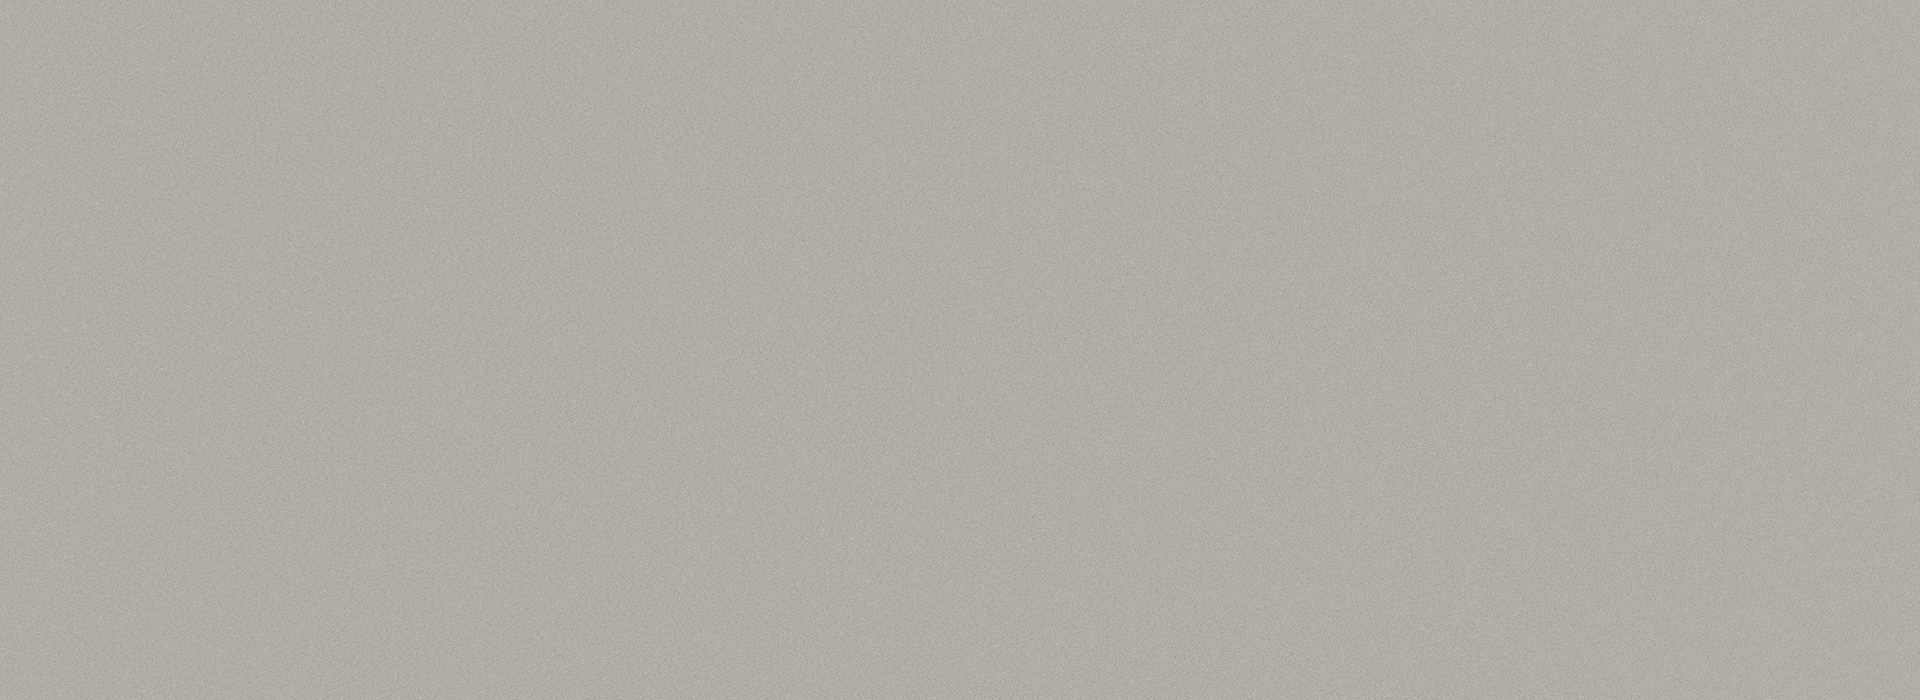 placeholder-grey-noise-700-height